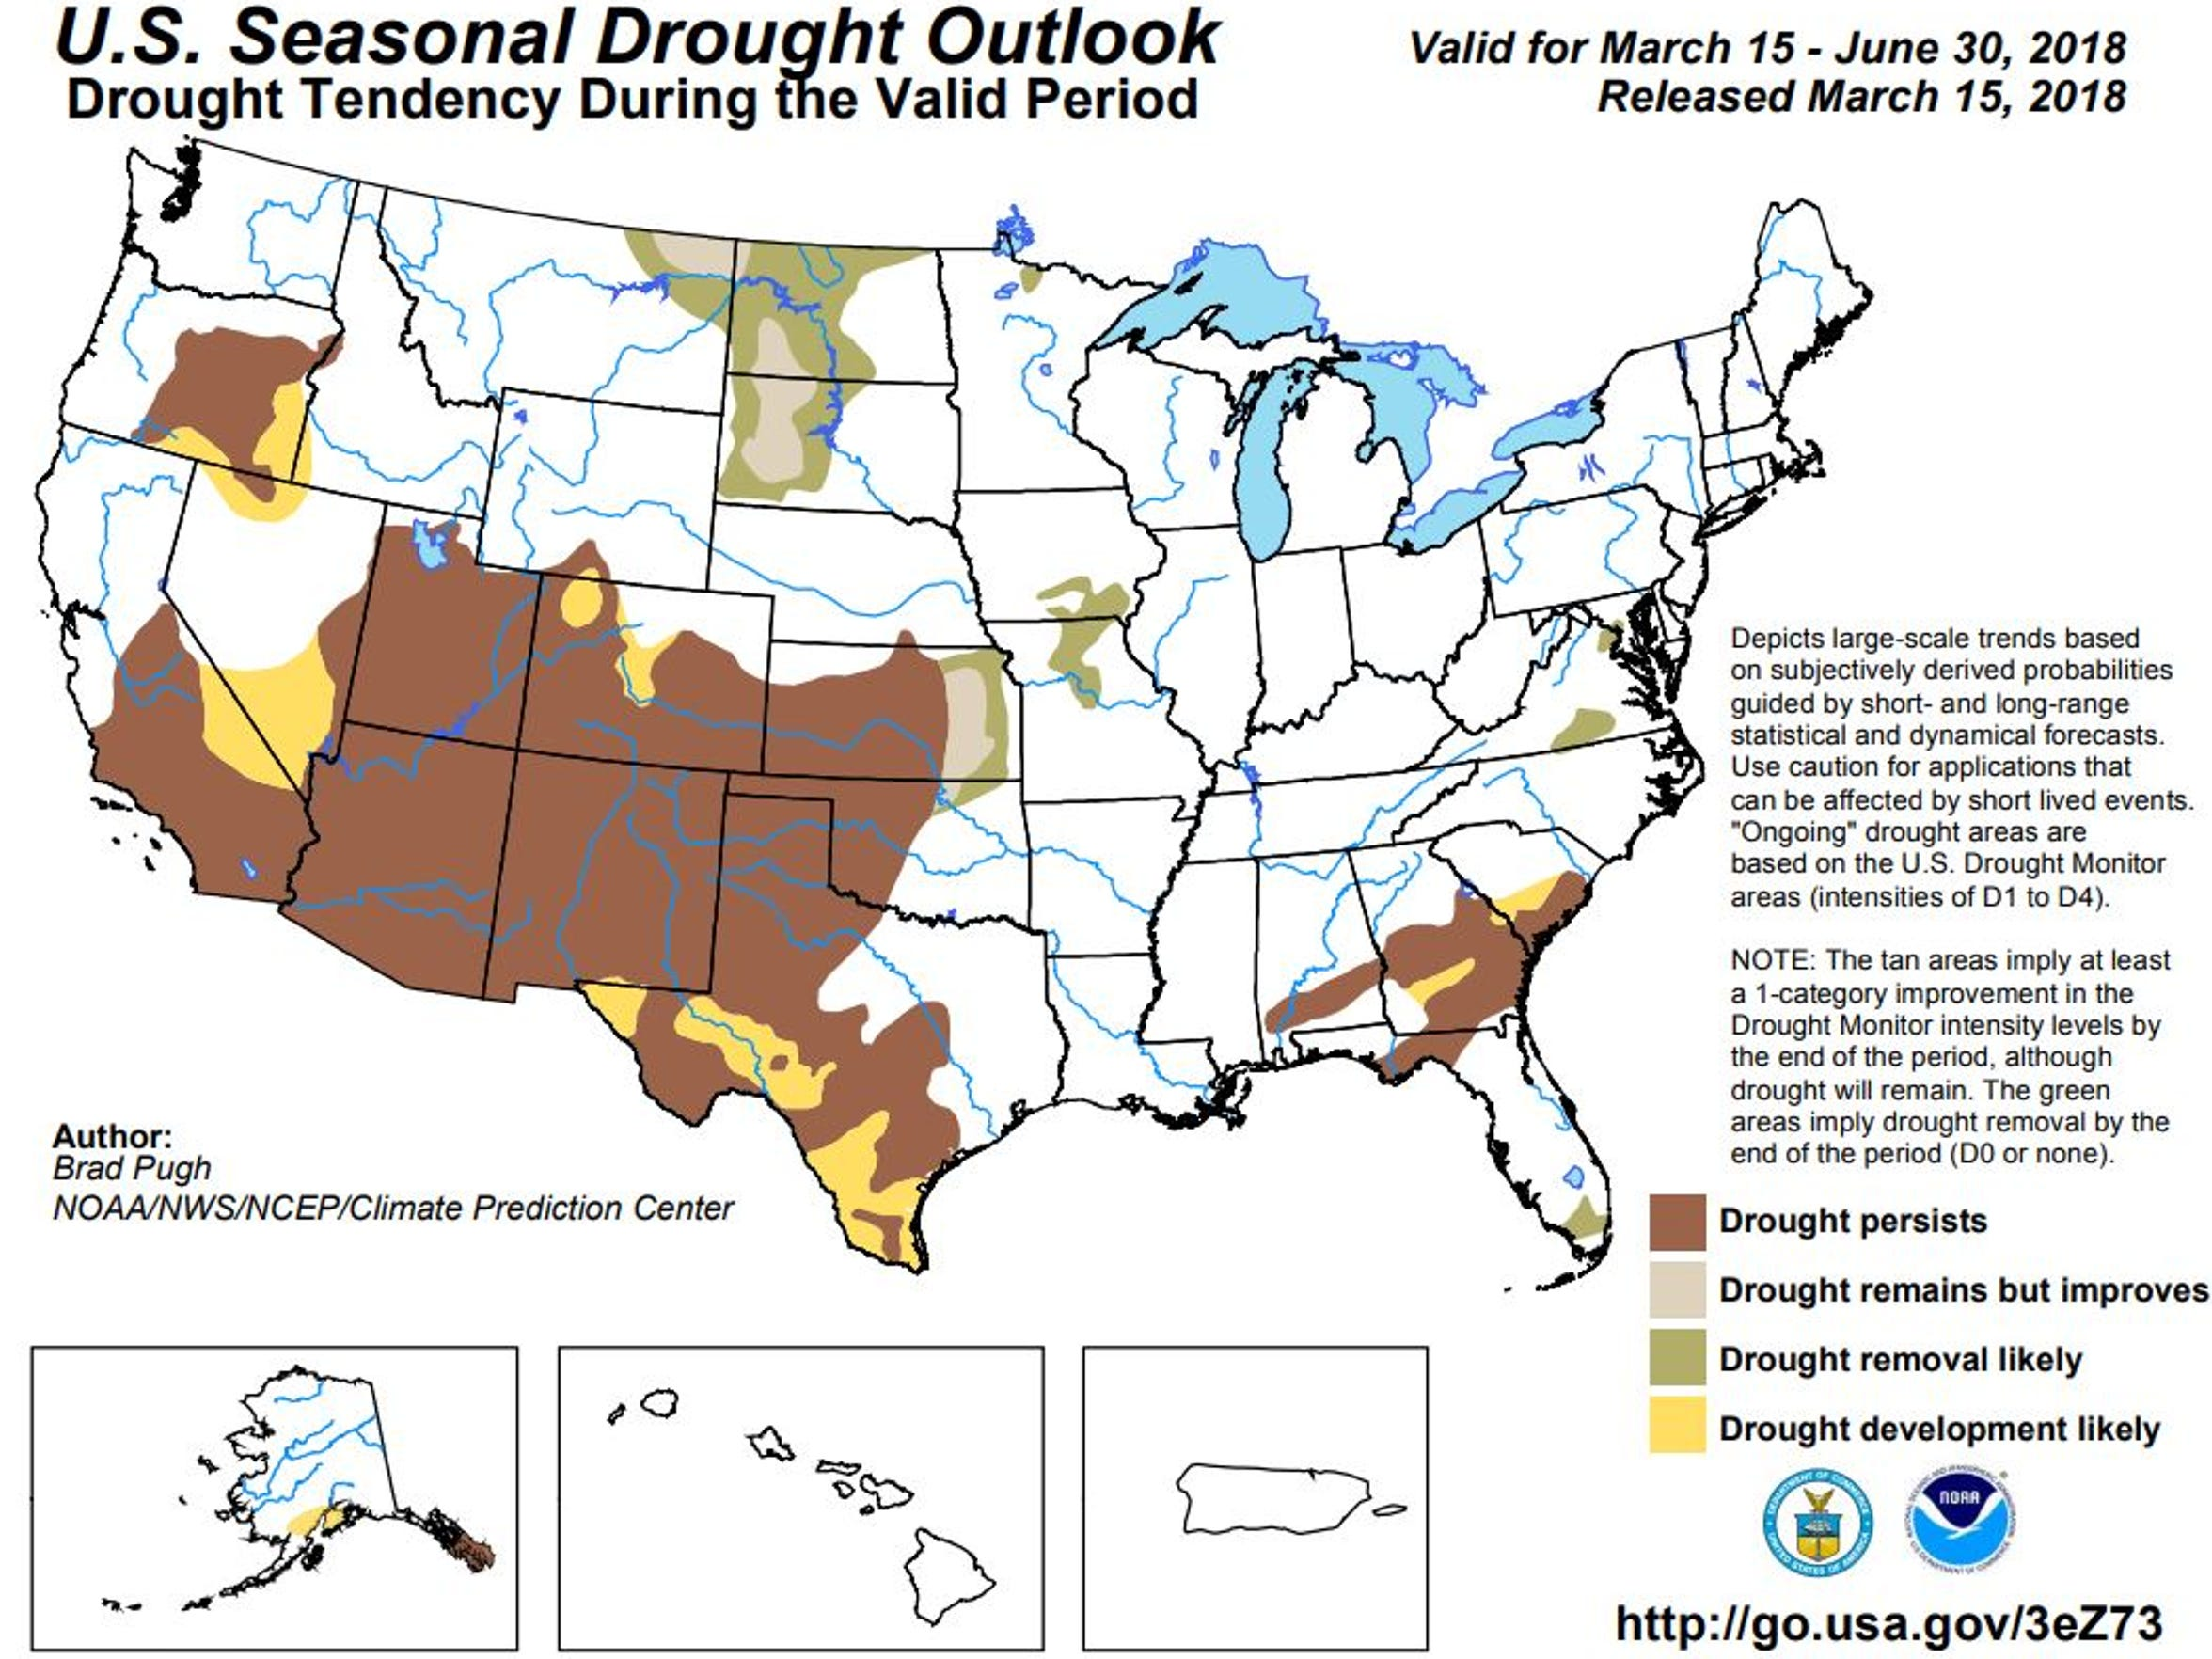 The Climate Prediction Center's seasonal drought outlook through June 30, 2018.